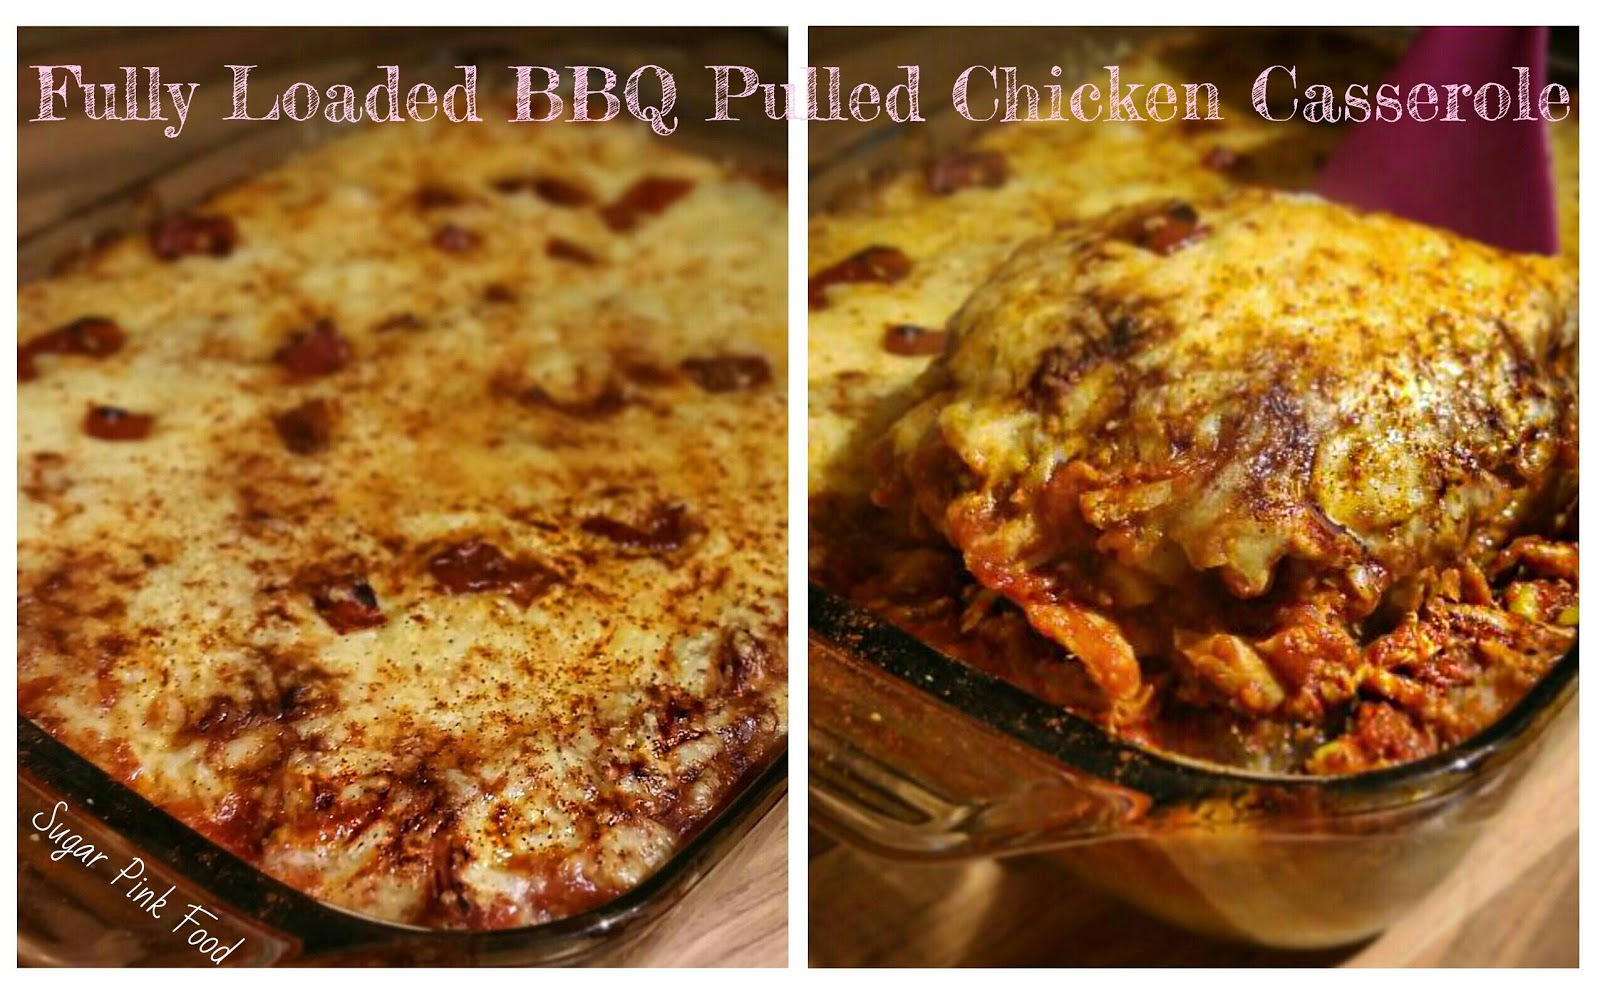 Fully Loaded Bbq Pulled Chicken Casserole